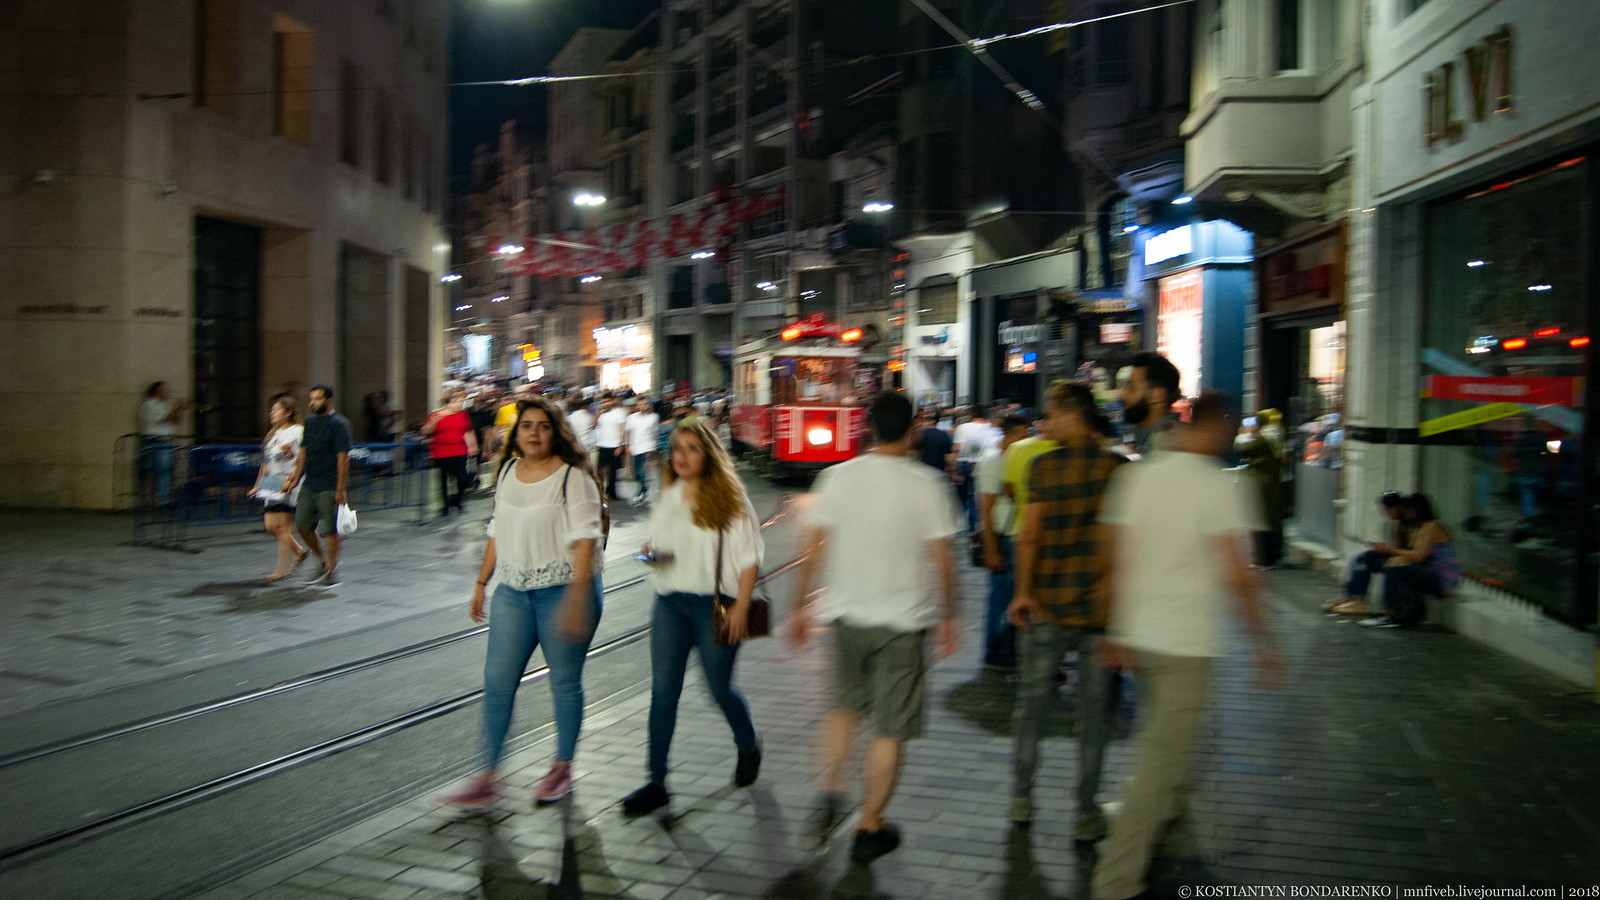 20180825 - Istanbul_Istiklal-22